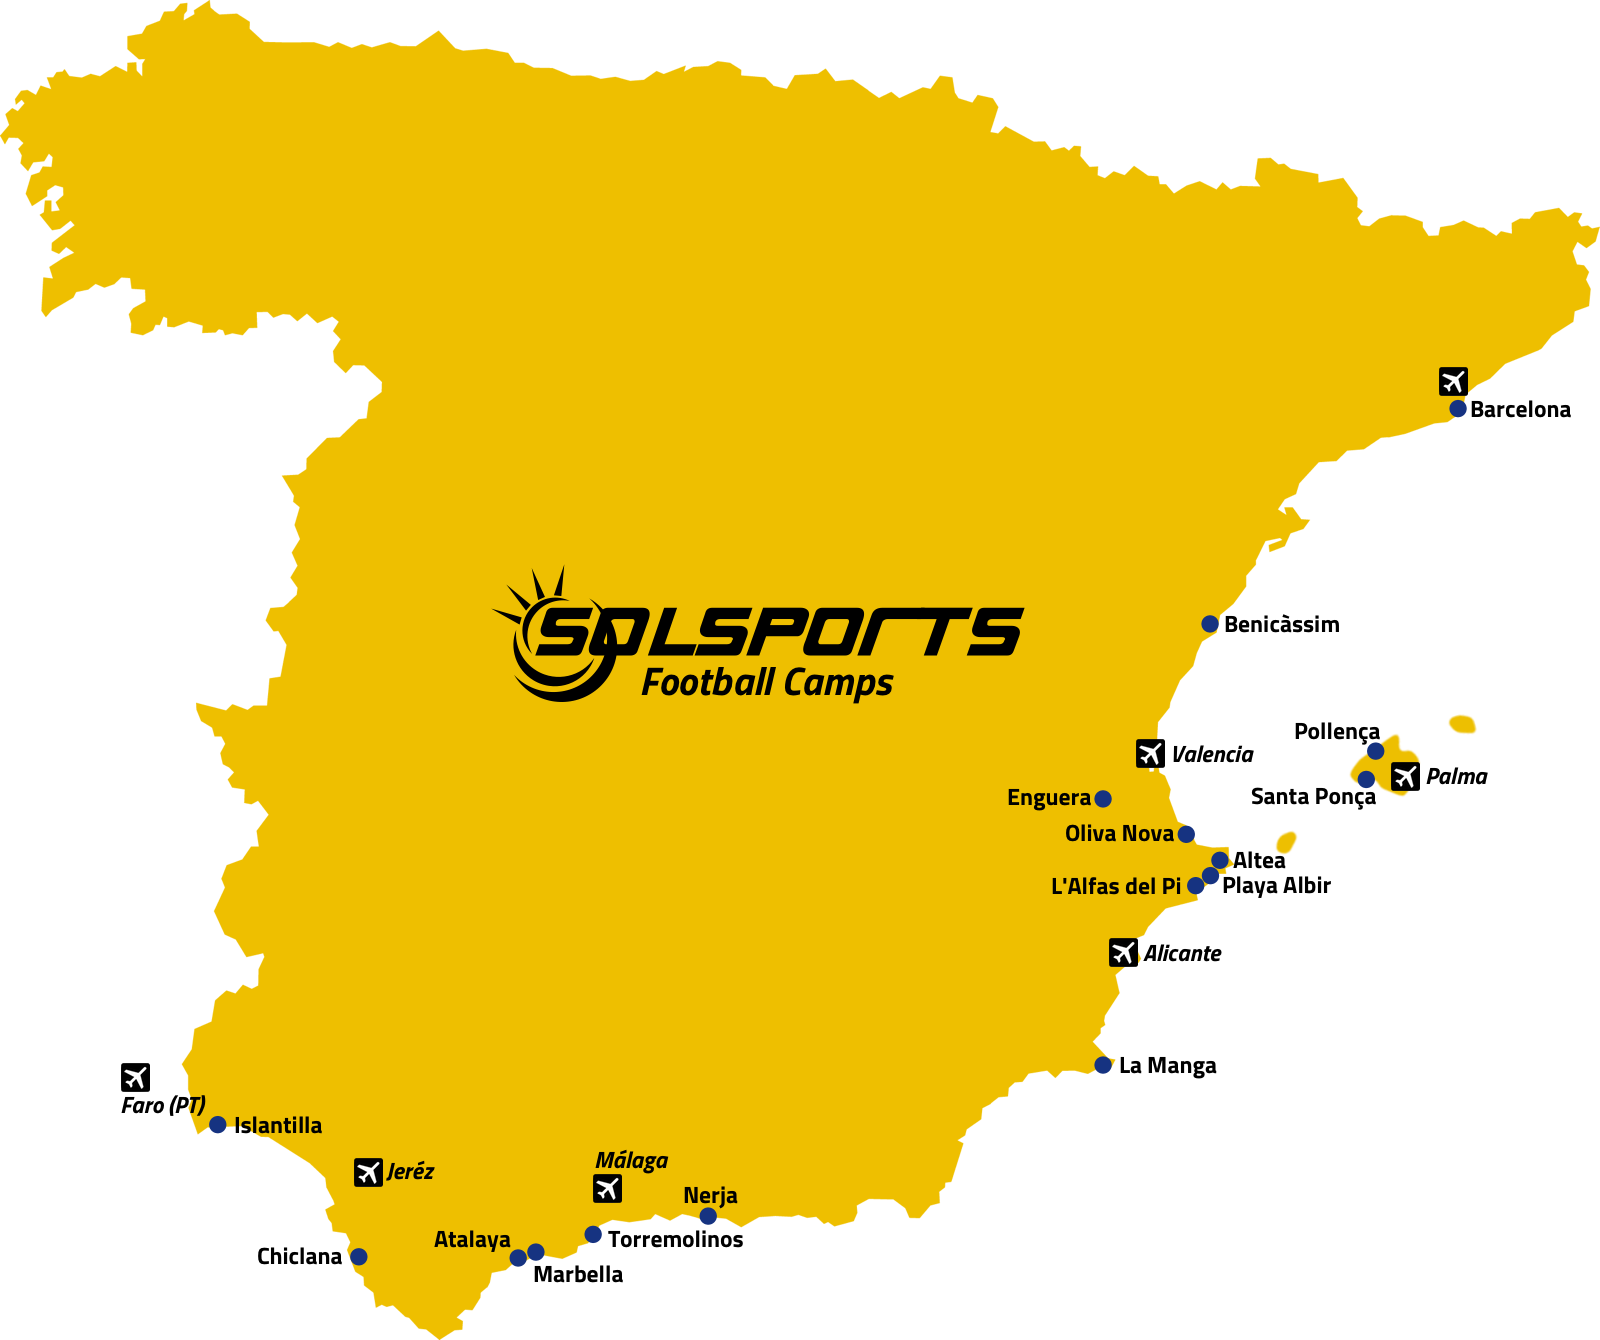 Football Map Of Spain.Sol Sports Football Training Camps In Spain For Pro And Amateur Teams